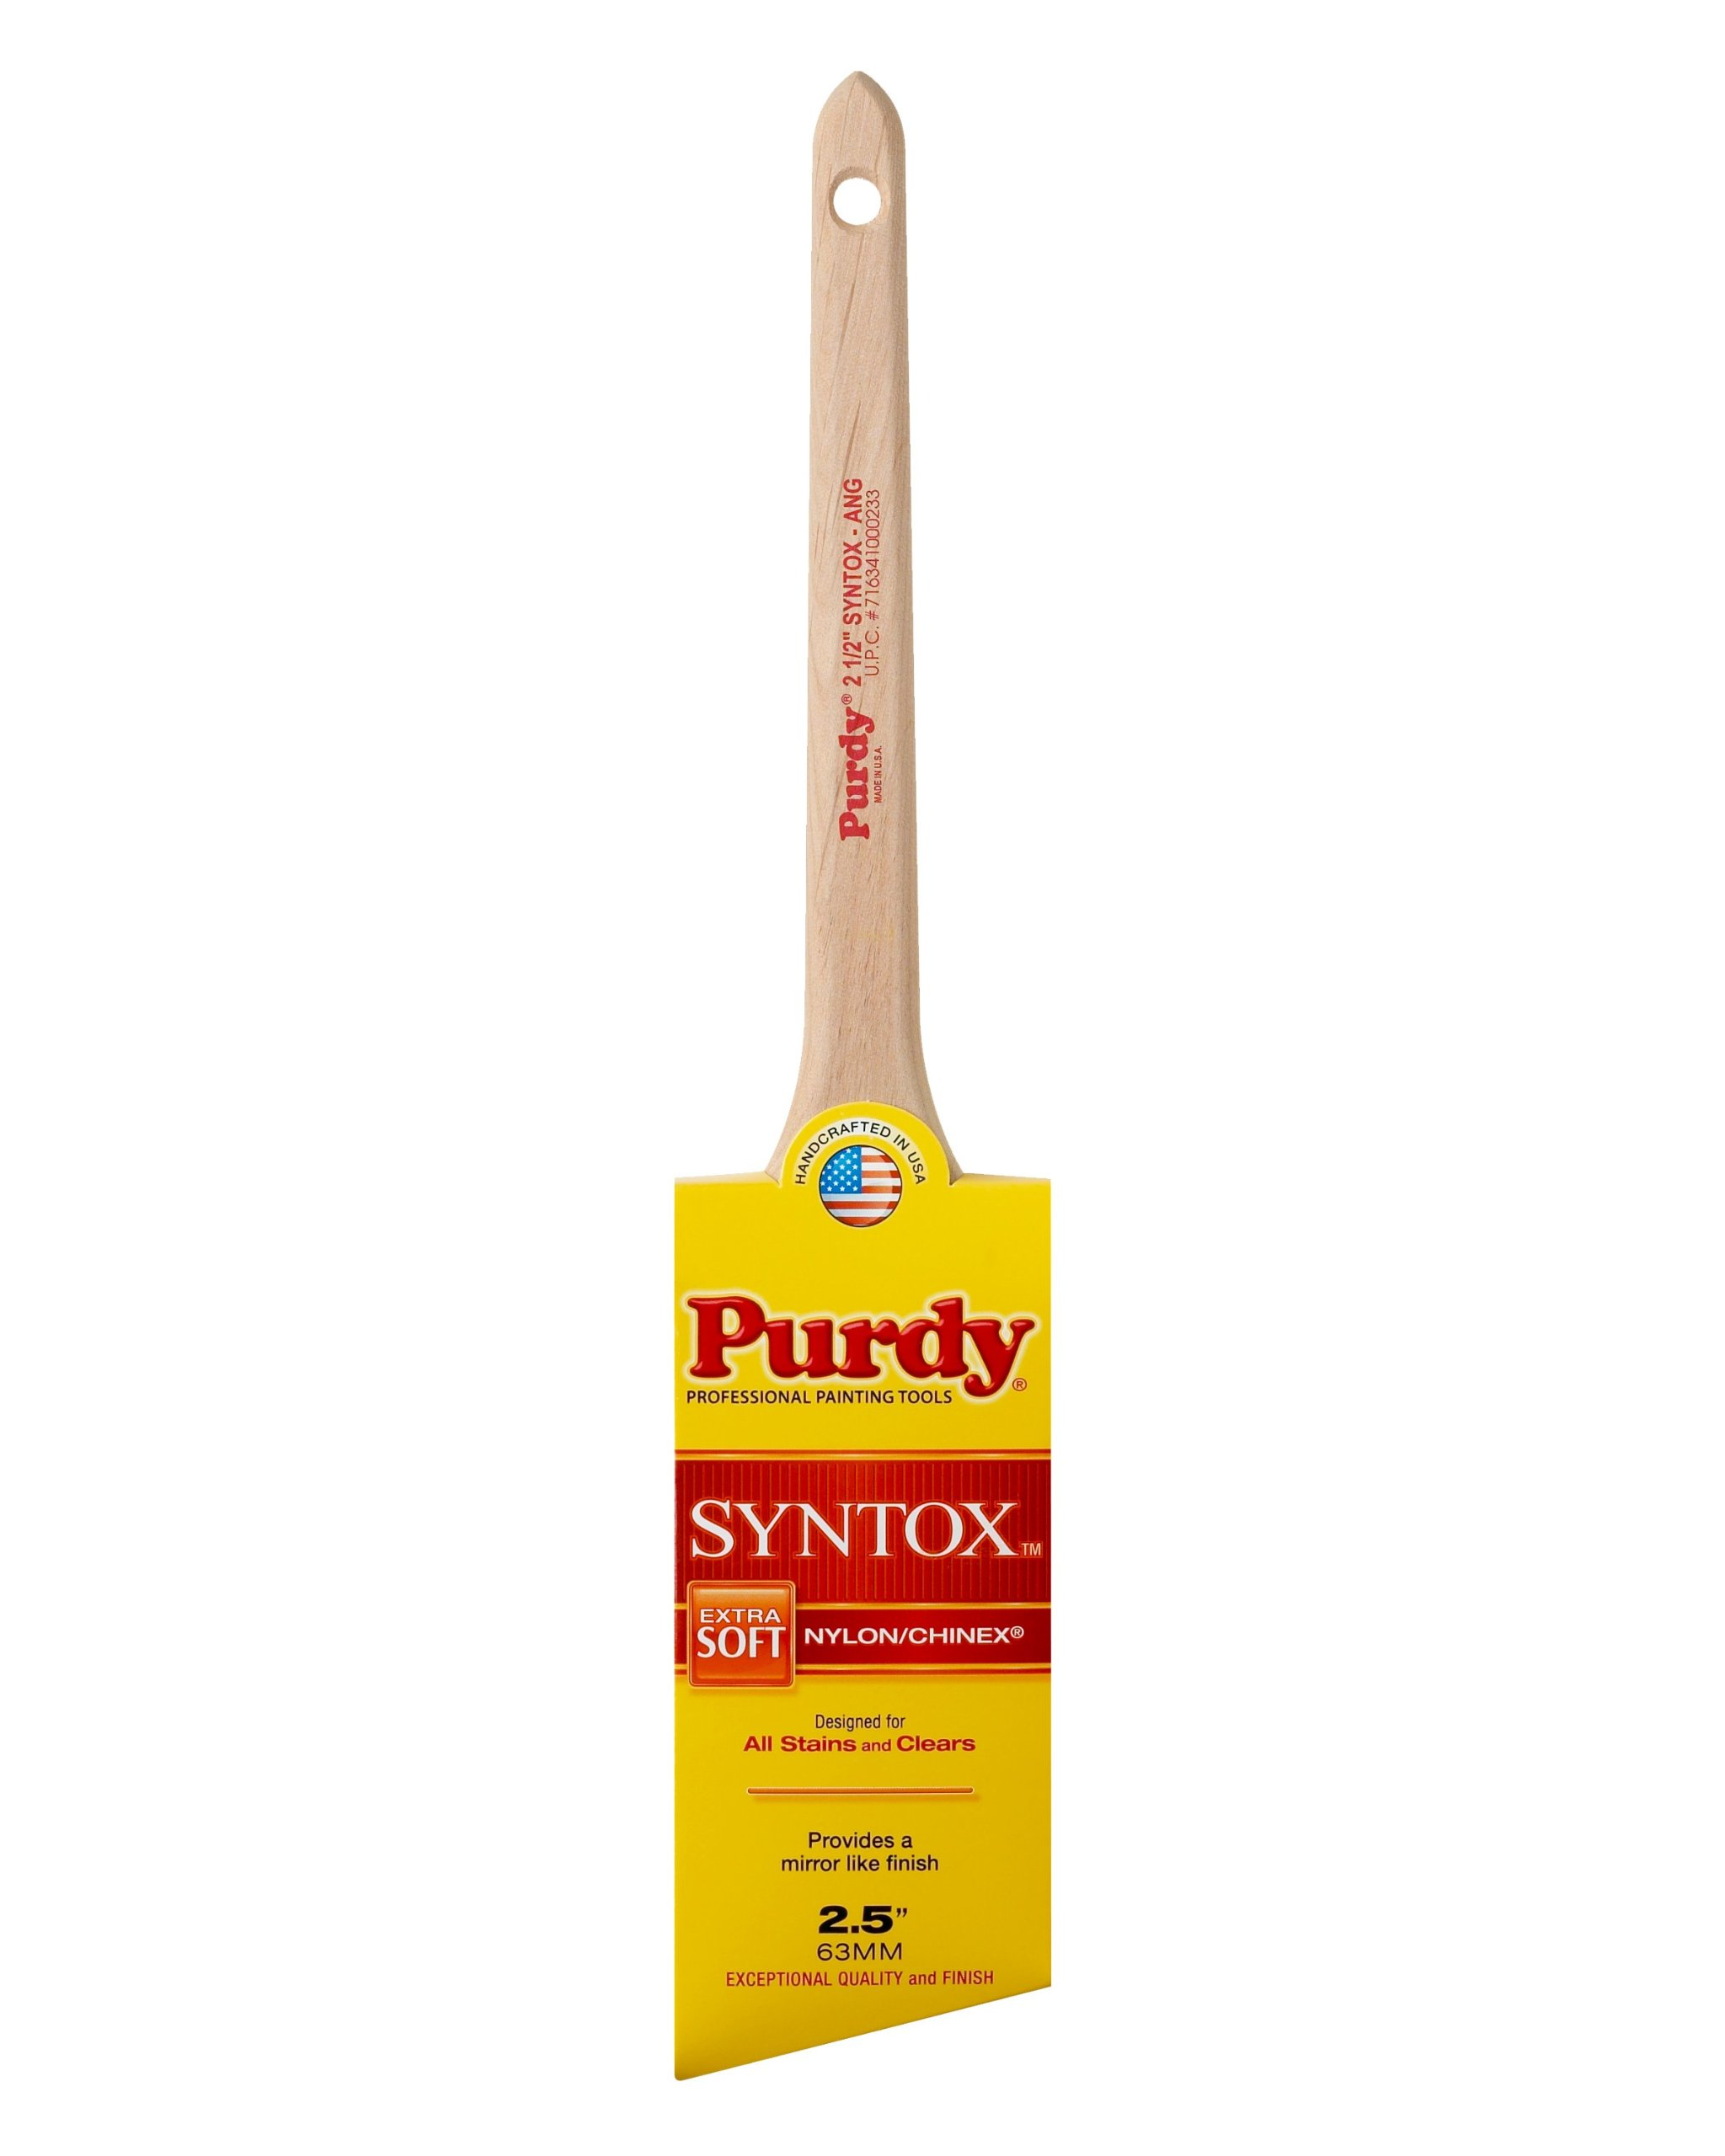 Purdy 144403625 Syntox Paint Brush, 2-1/2 in Width, Angular Dupont Chinex and Nylon Blend, 2.5 inch